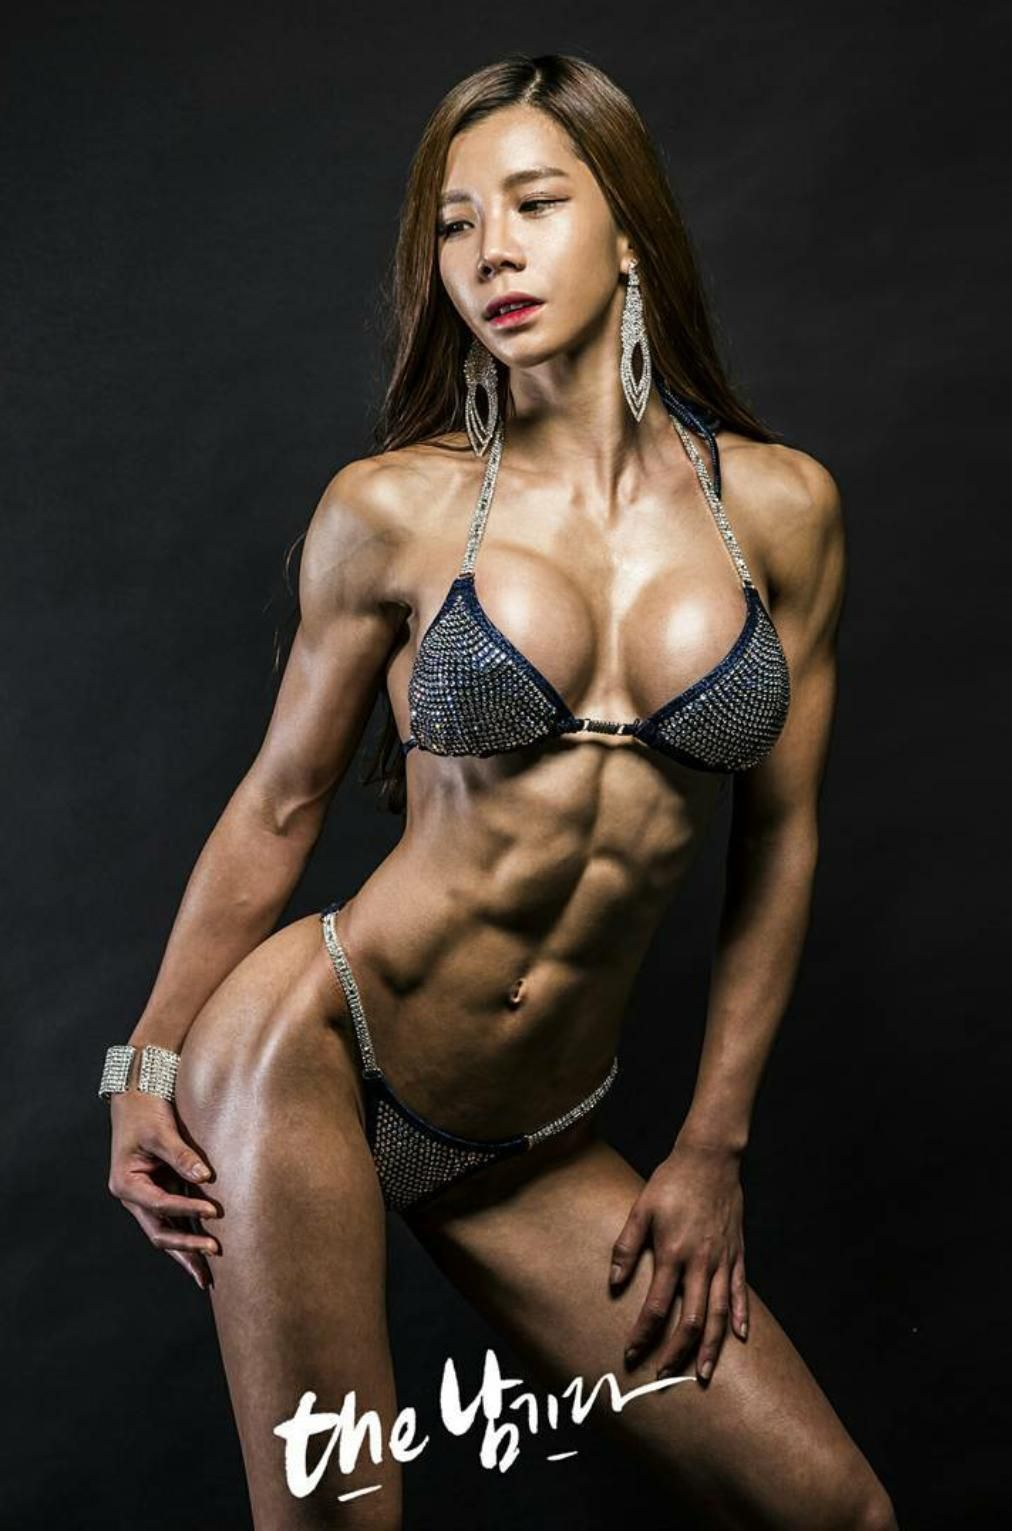 Asian Muscle Girls  Timothy Moore  Muscle Girls, Fitness -3818